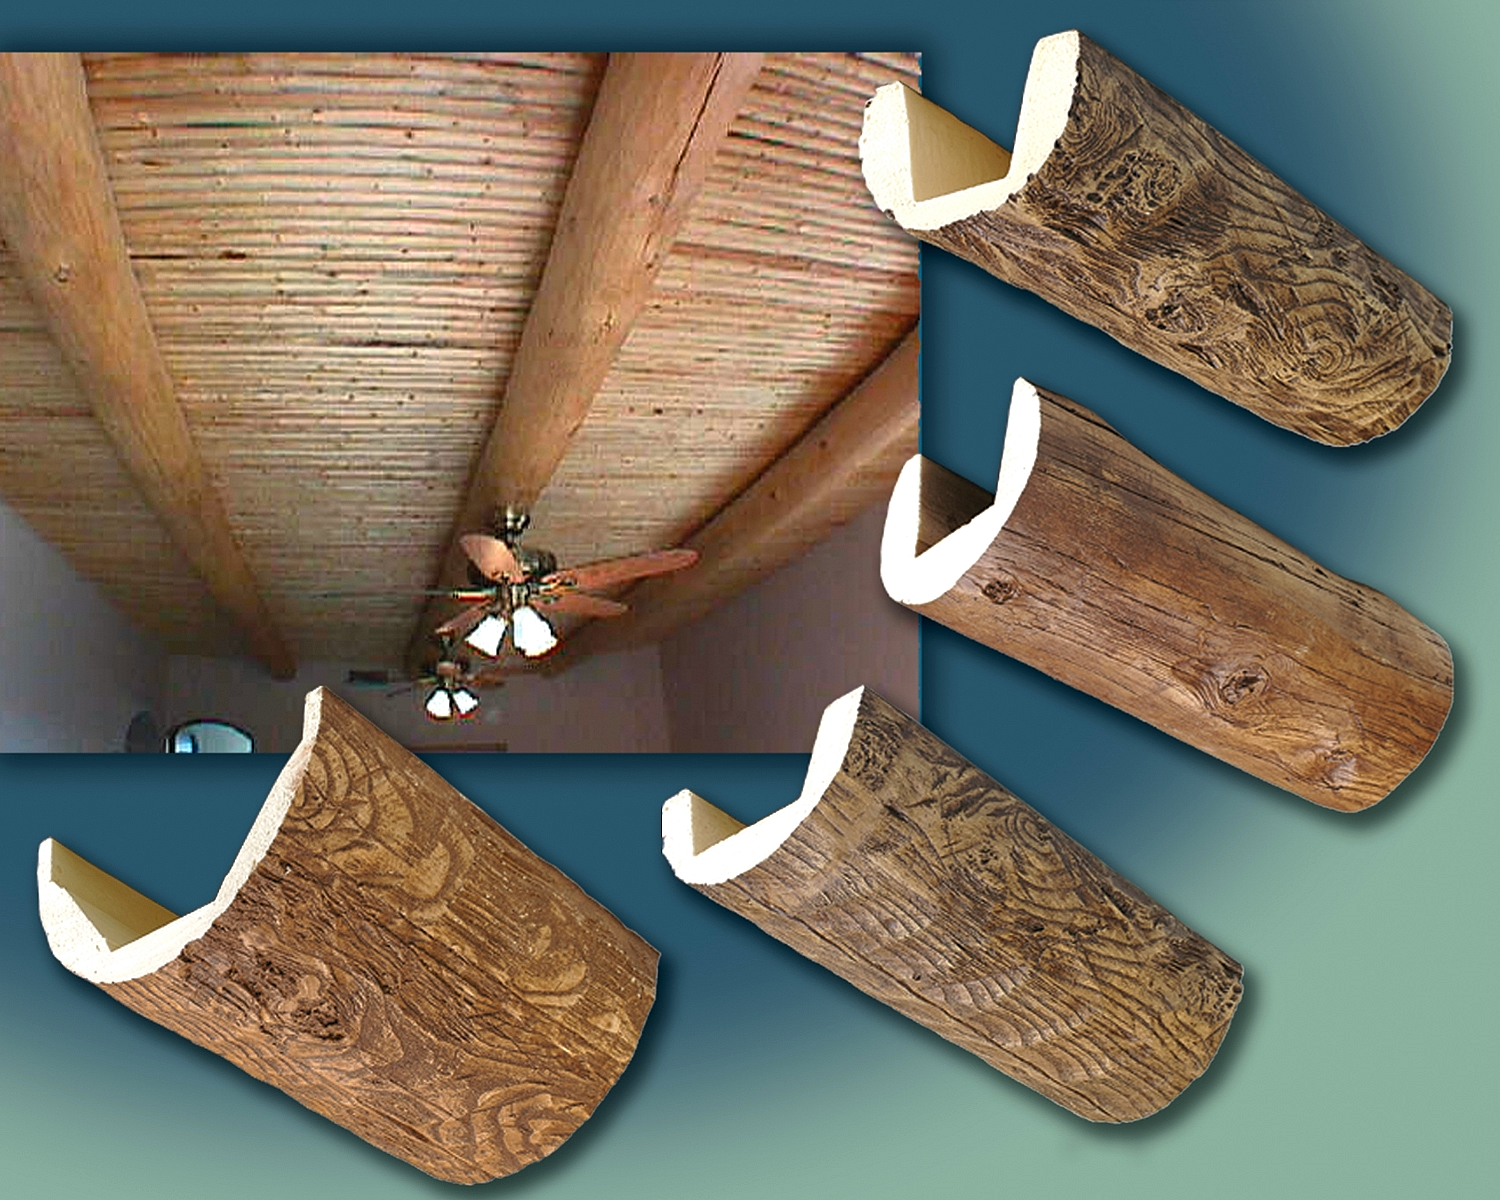 Outwater introduces its faux wood beams for Faux wood beams com